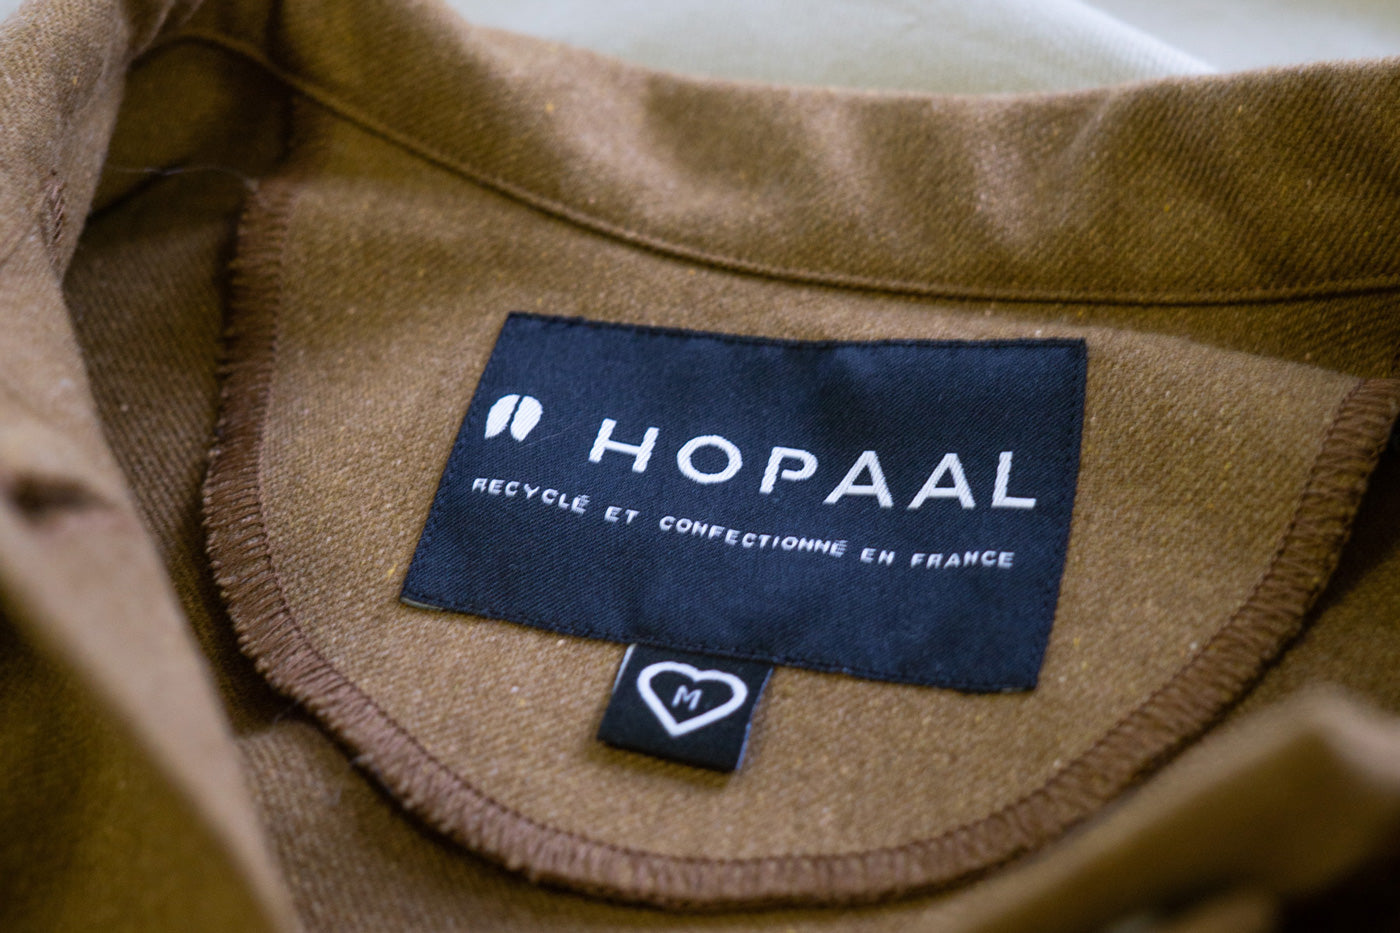 etiquette hopaal made in france